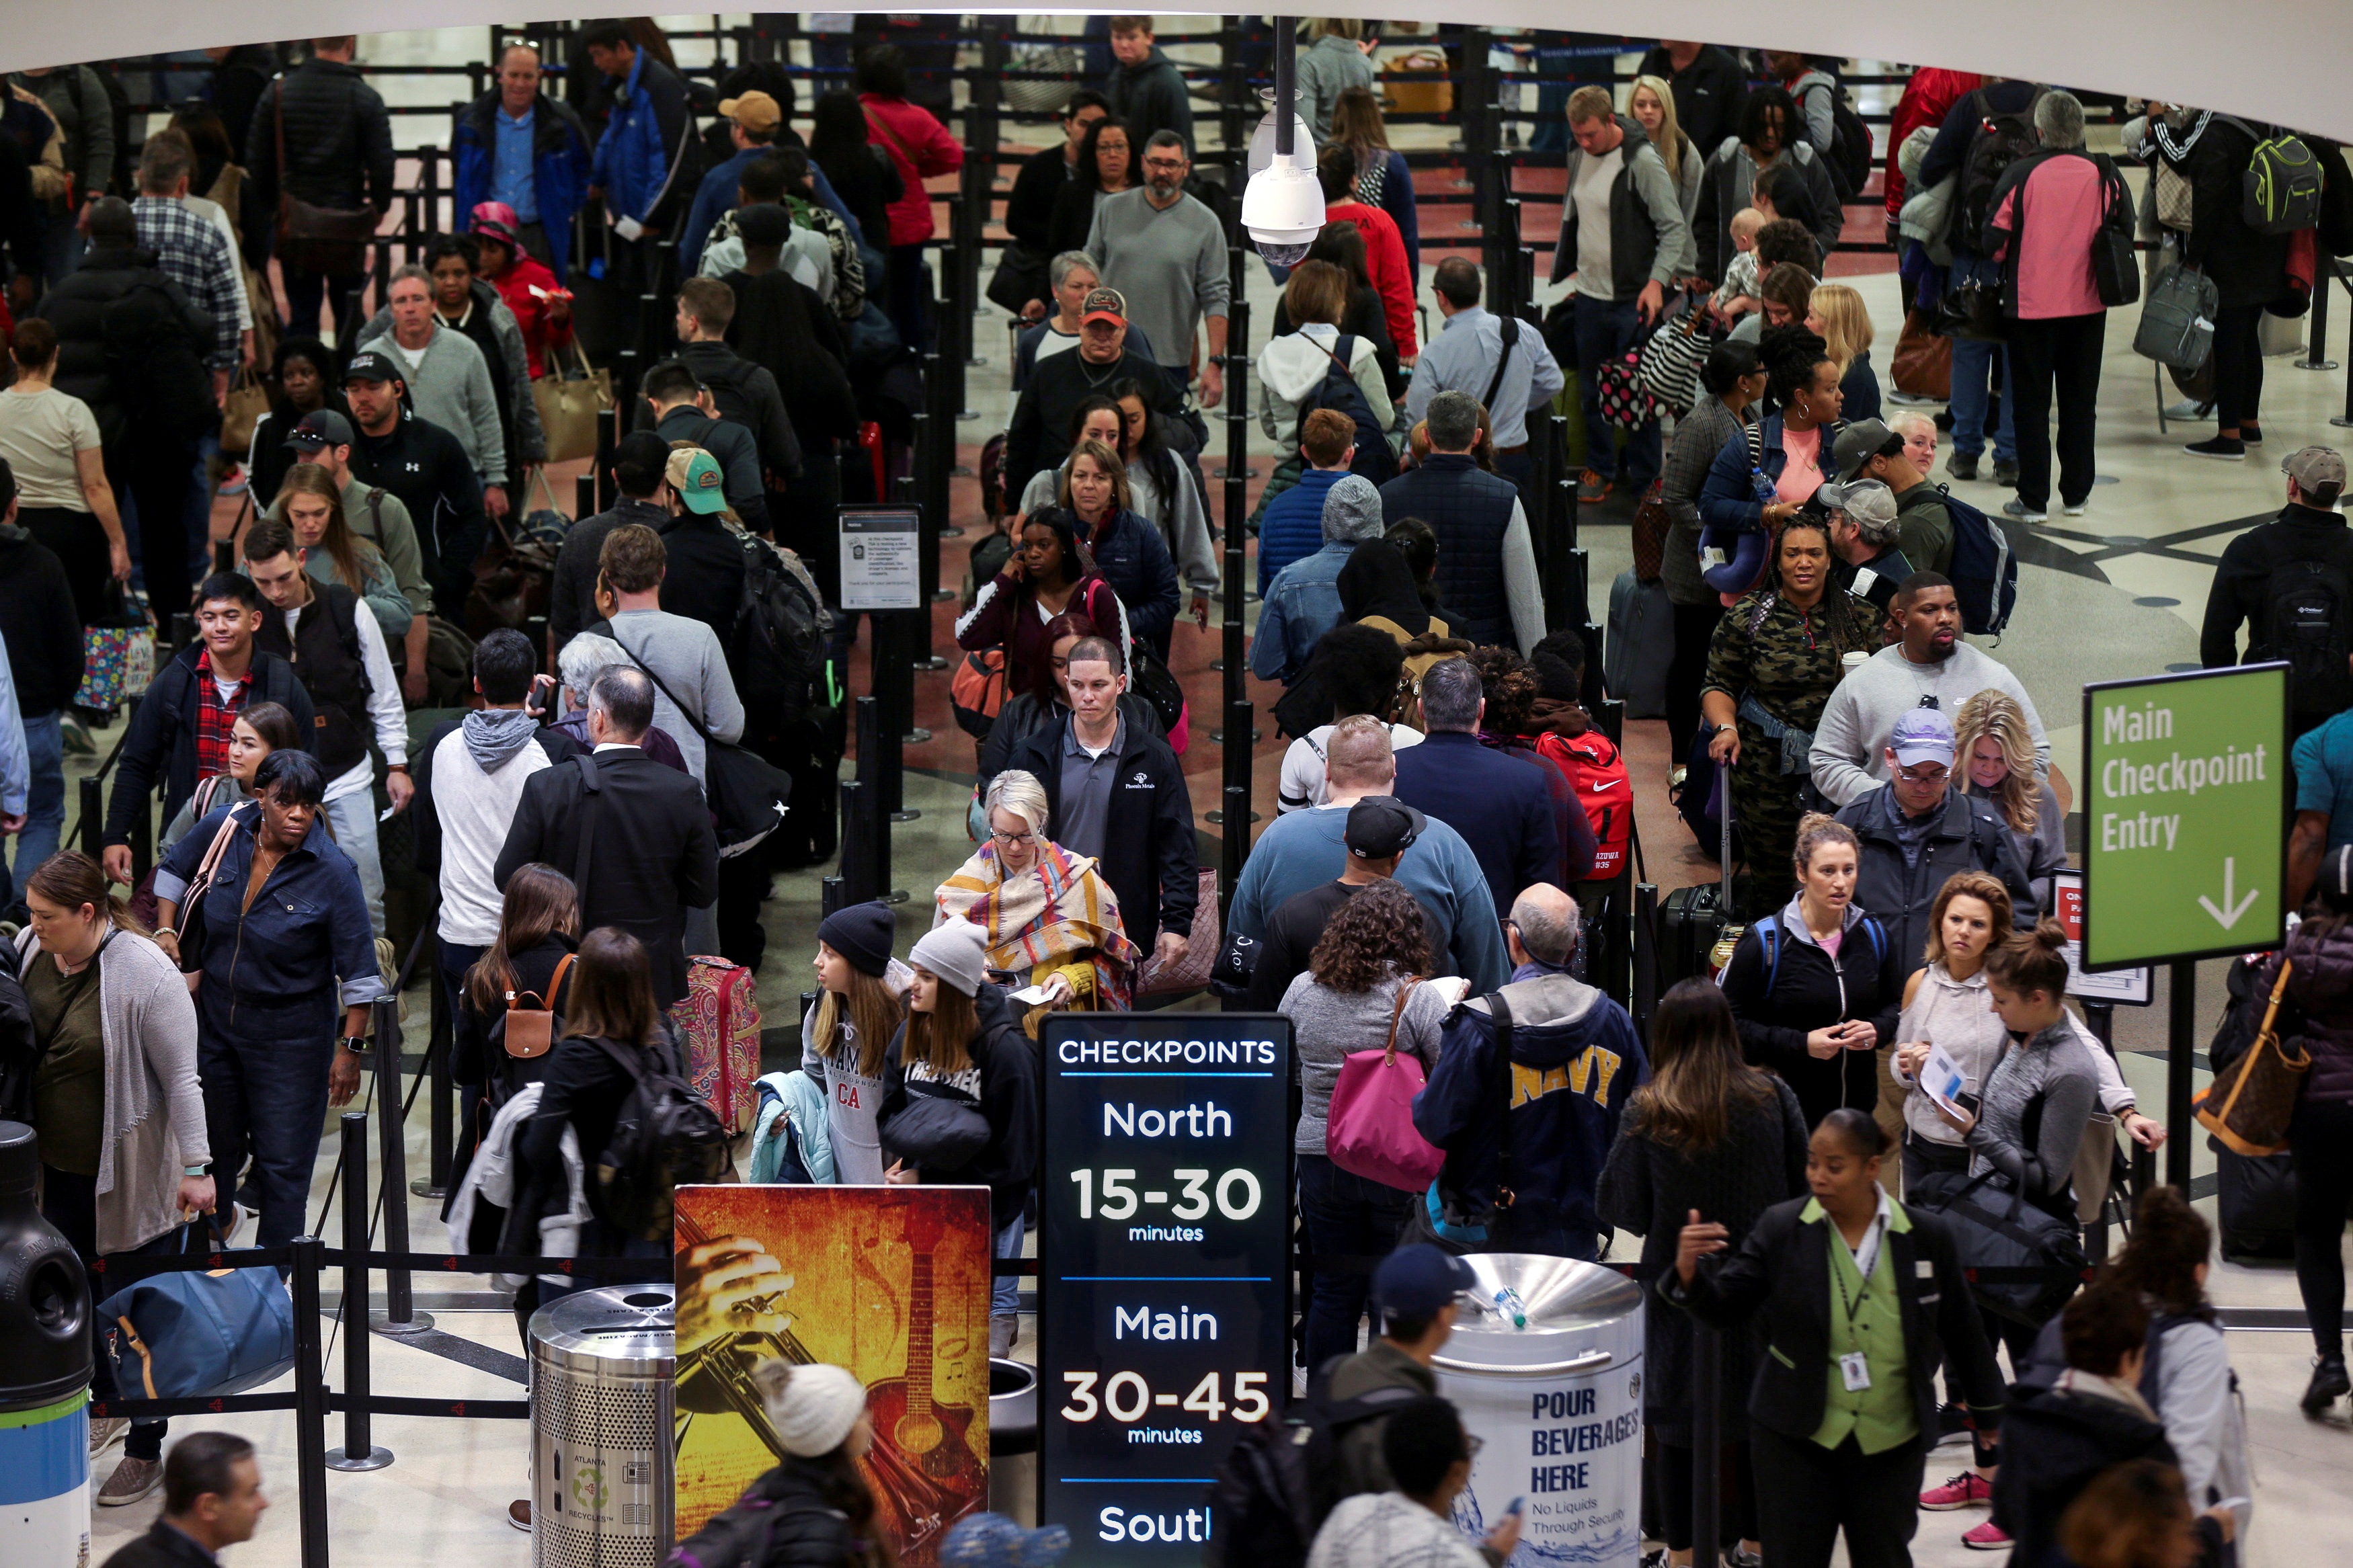 FILE PHOTO: Long lines are seen at a Transportation Security Administration (TSA) security checkpoint at Hartsfield-Jackson Atlanta International Airport amid the partial federal government shutdown, in Atlanta, Georgia, U.S., January 18, 2019. REUTERS/Elijah Nouvelage/File Photo